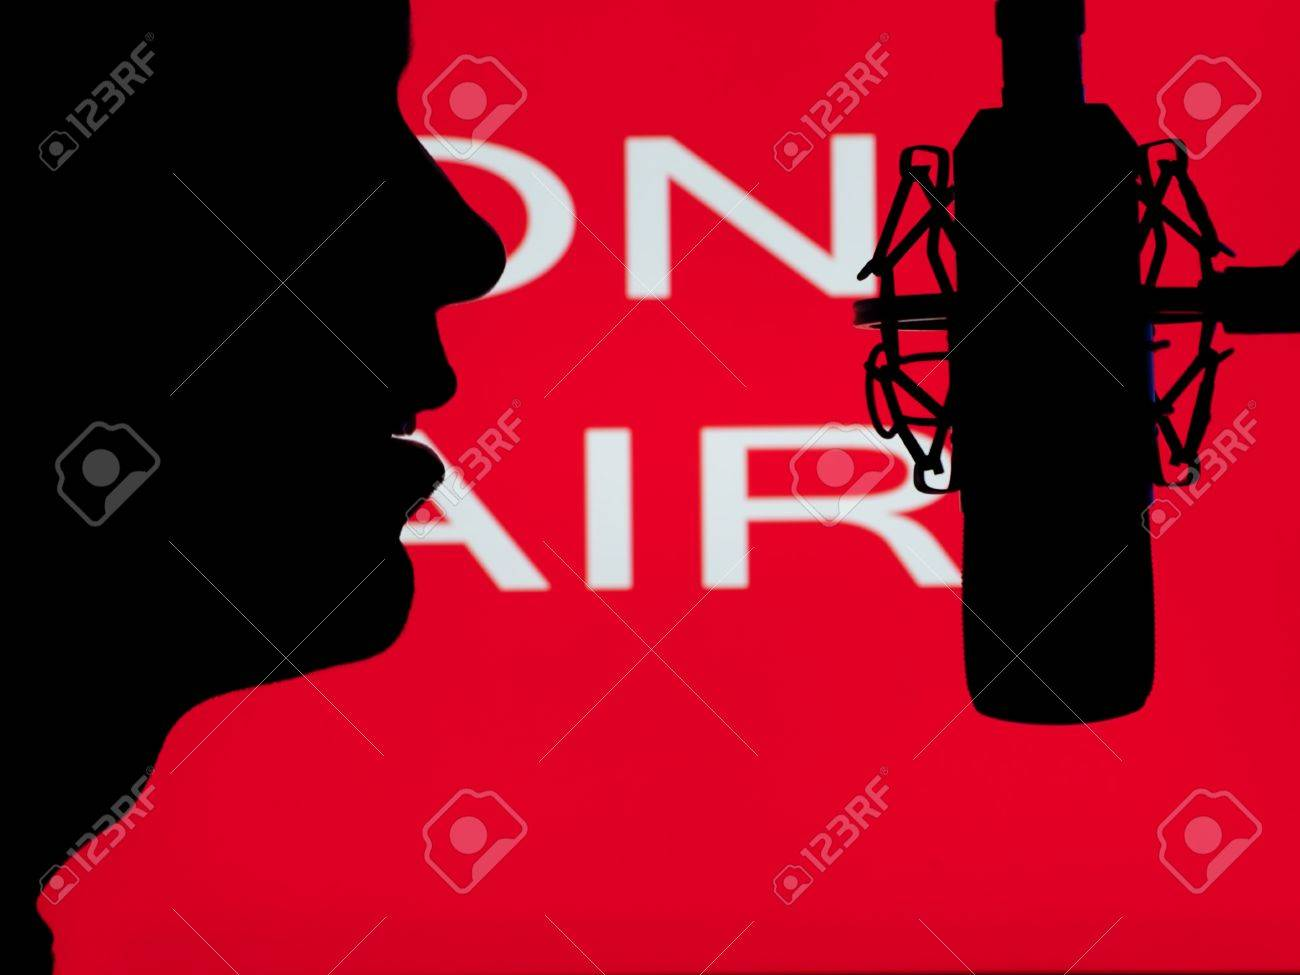 man speaking into the microphone with on the air sign in the background,for entertainment,broadcasting,sound themes Stock Photo - 9361481